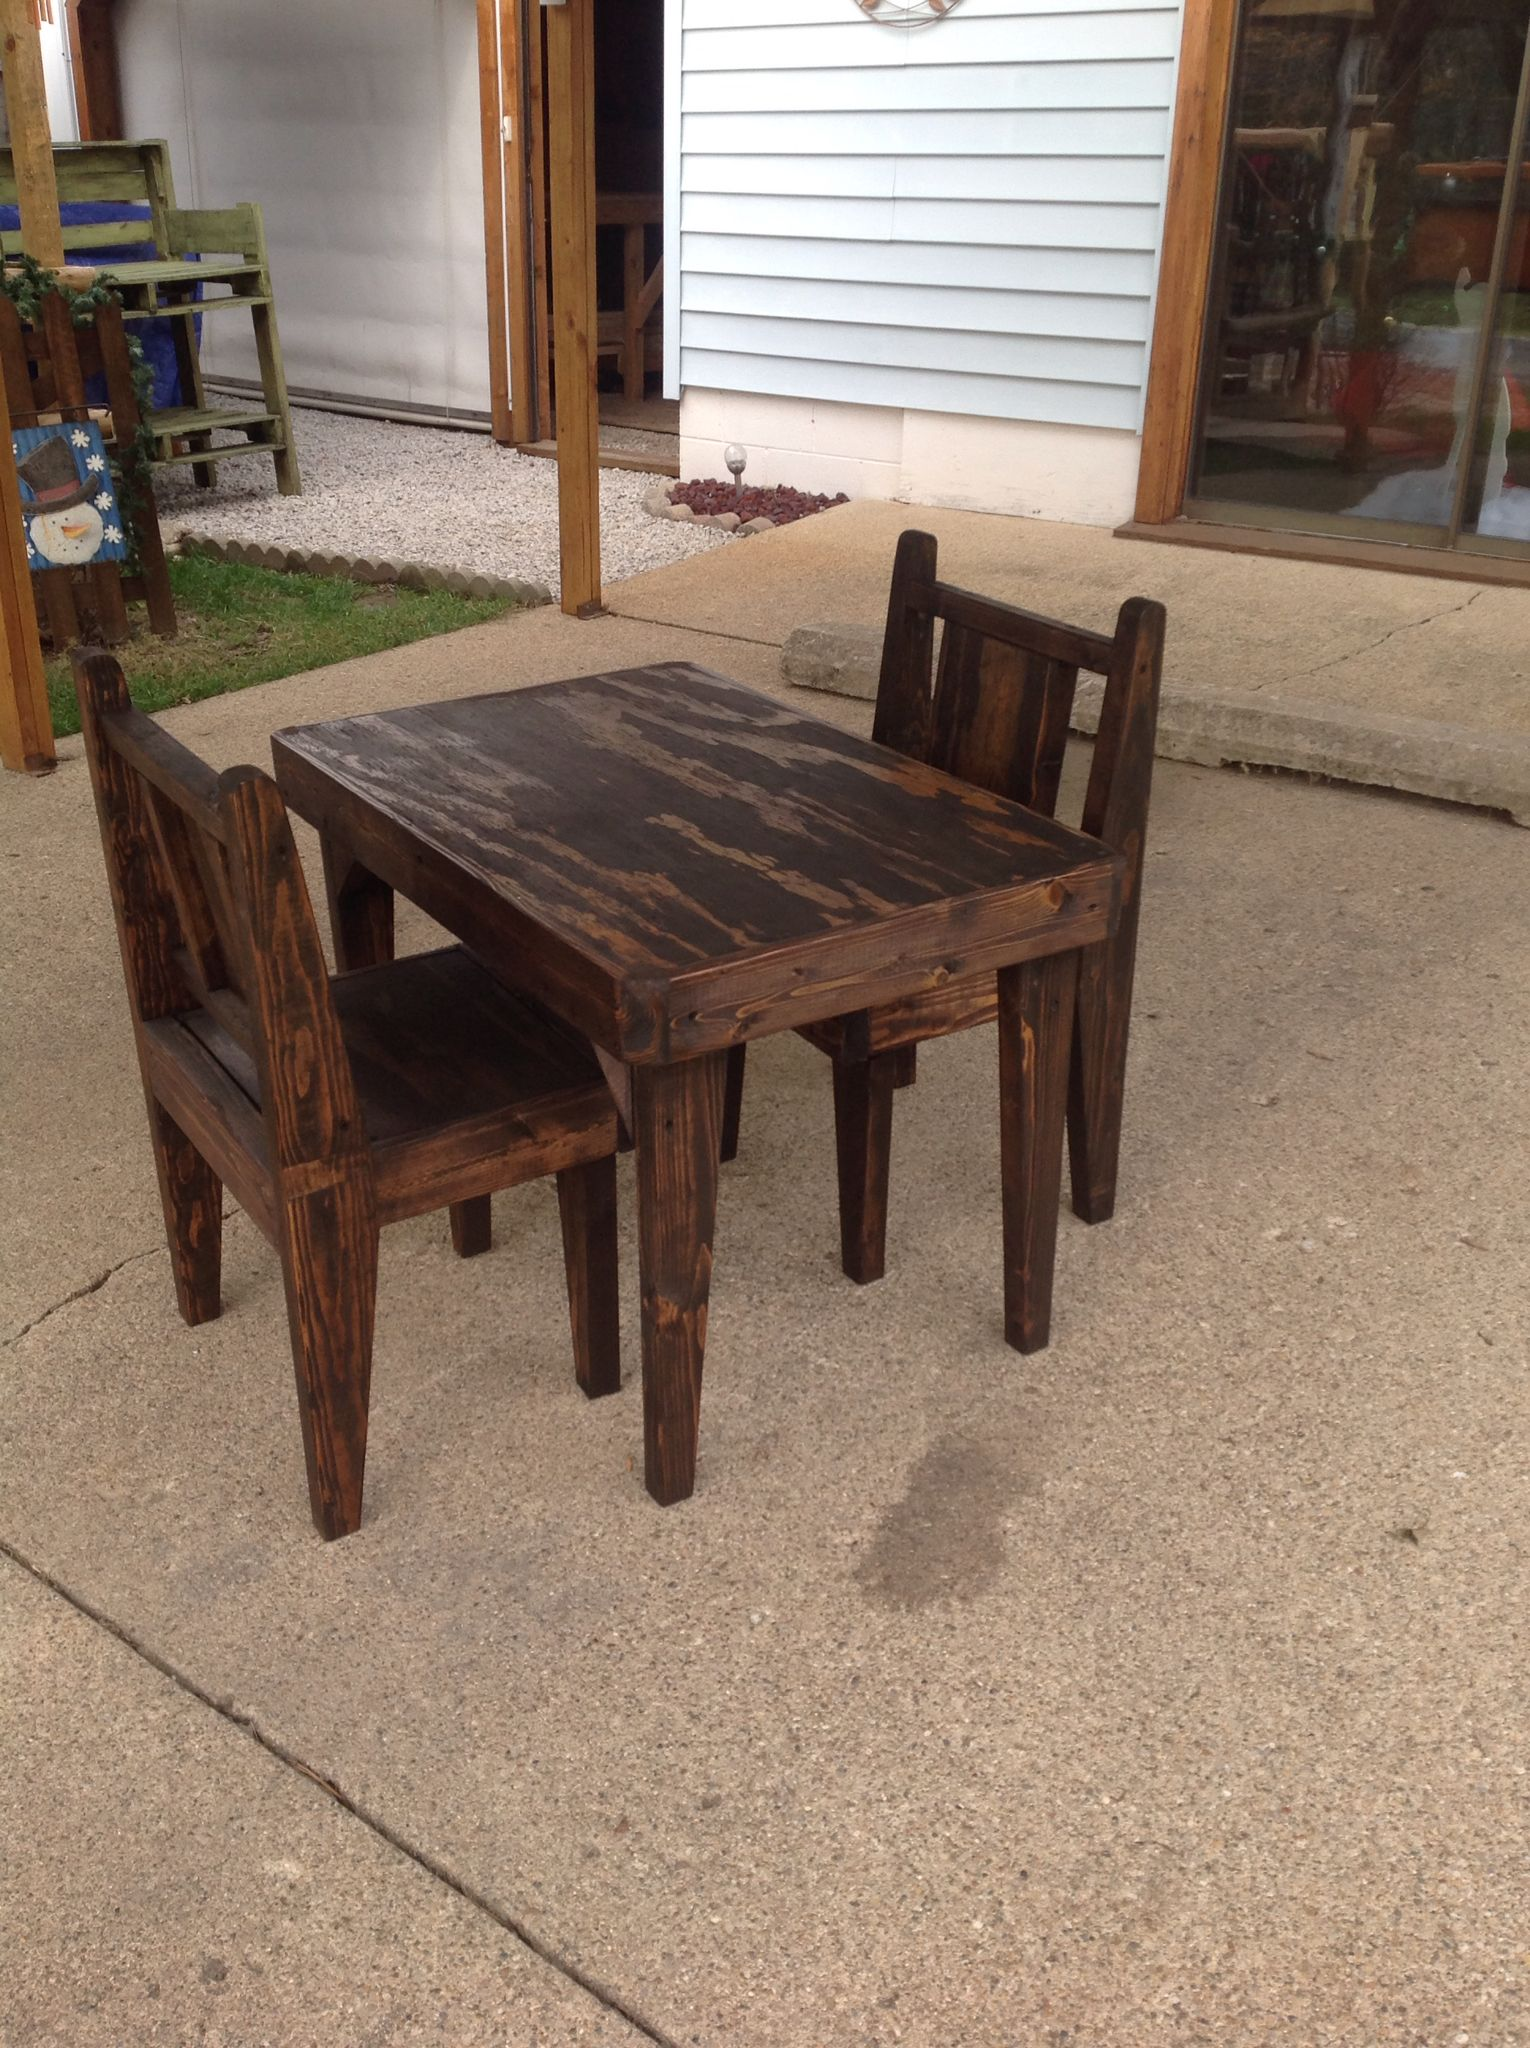 Rustic Kids Table Chairs We Made Here At Wooden Wonders, Waveland, In